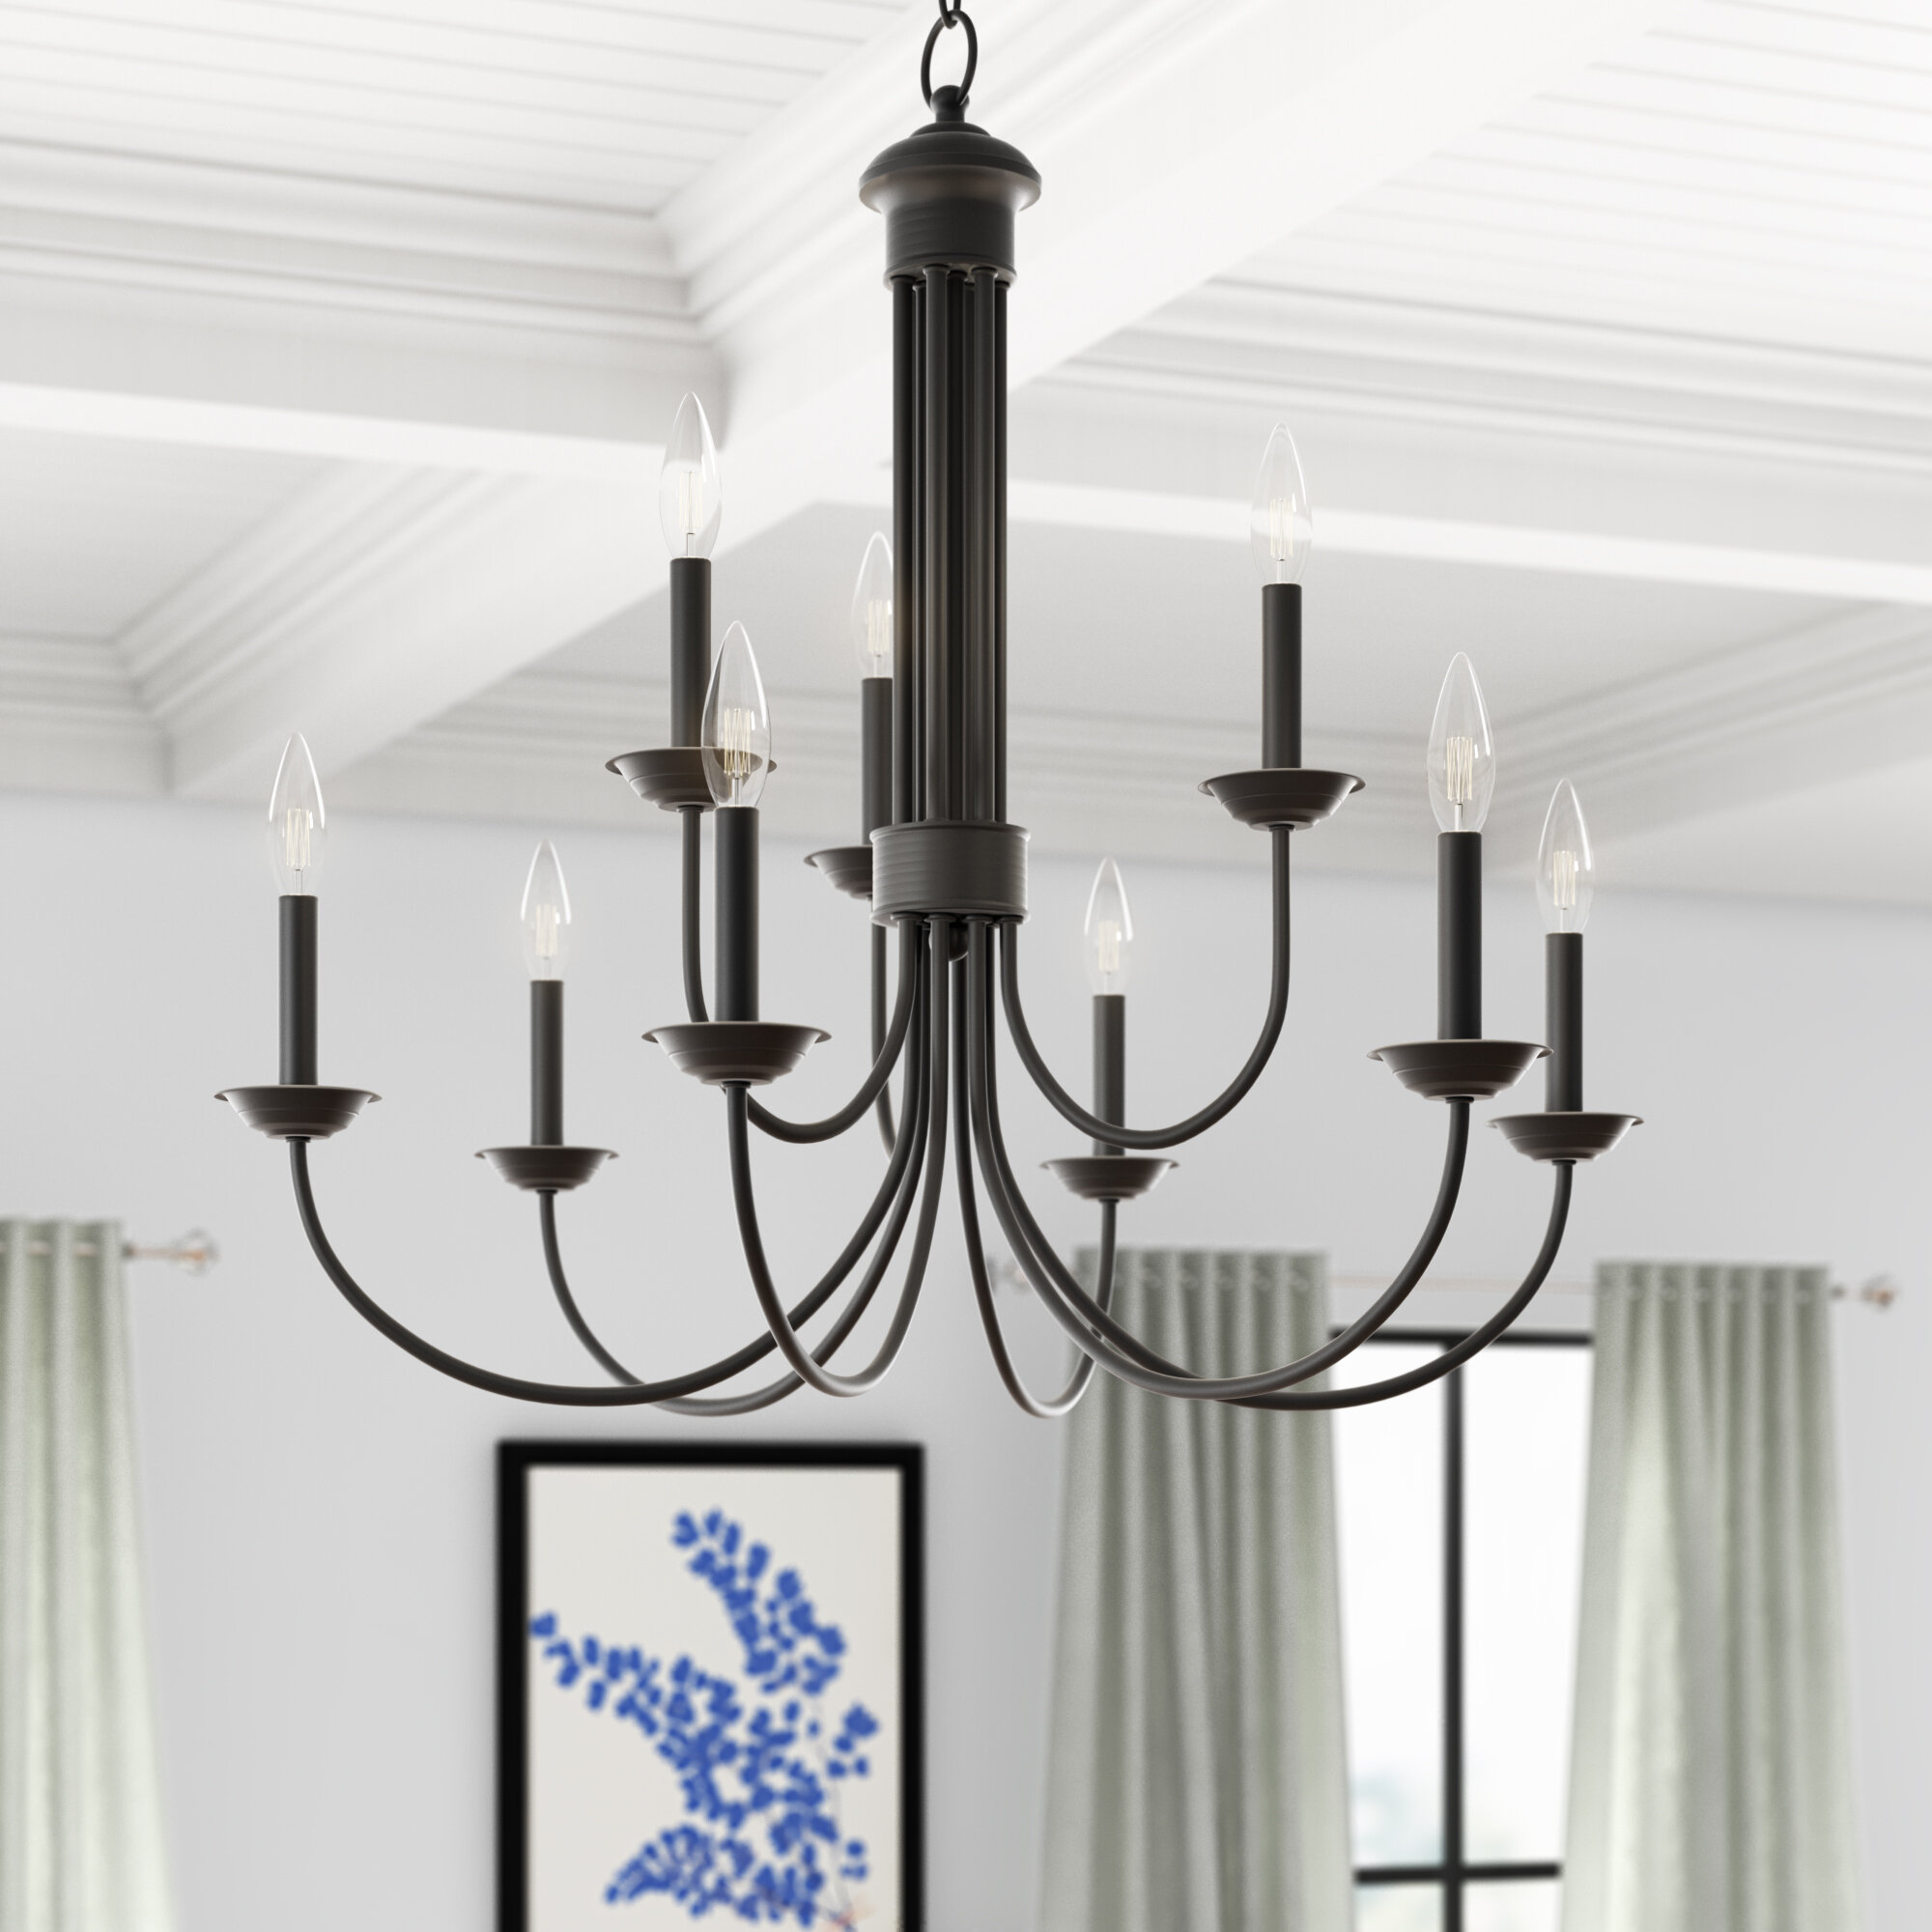 Carruthers 9 Light Candle Style Chandelier For Annuziata 3 Light Unique/statement Chandeliers (Image 6 of 30)